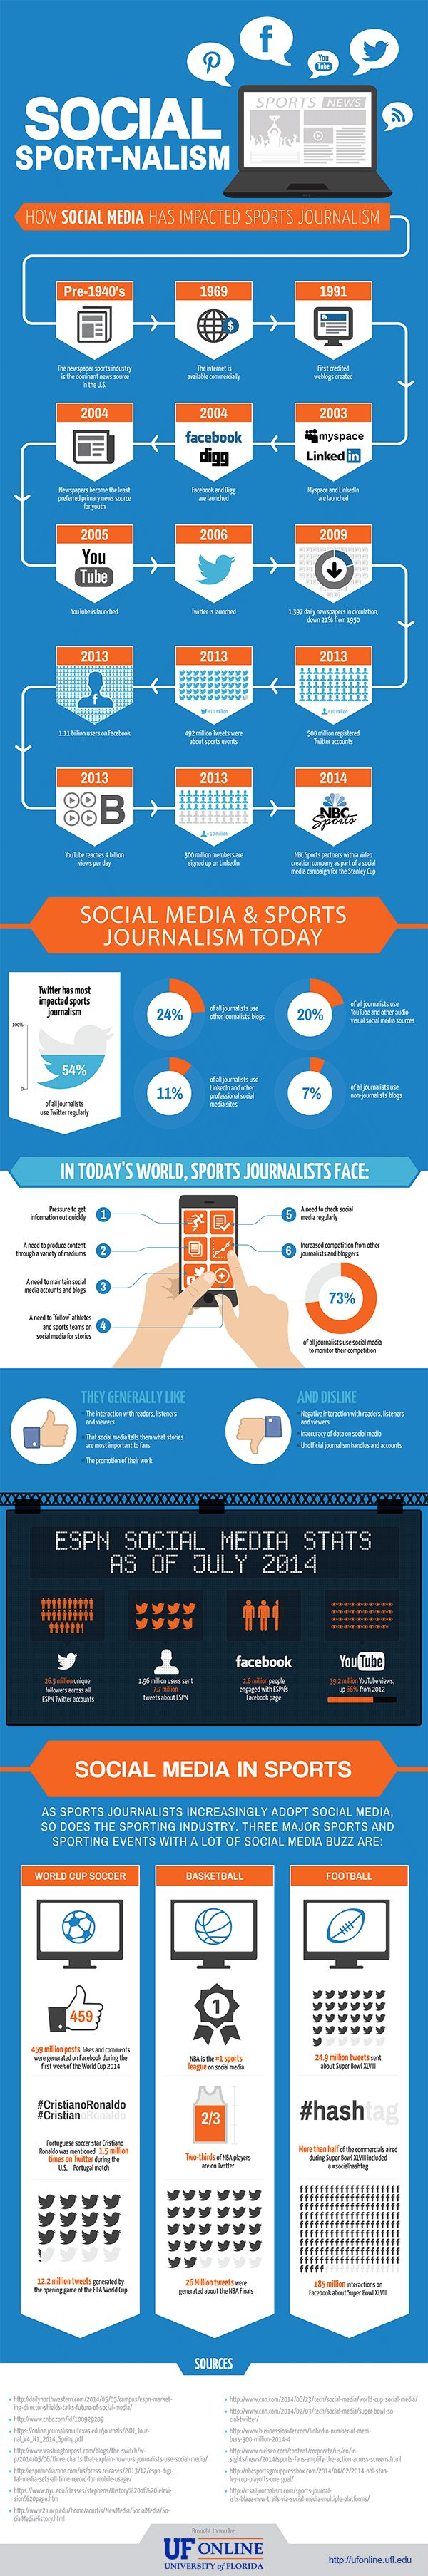 Social media has taken the world by storm. It has impacted the way we receive and share all kinds of news. Sports news is no stranger to social media either, as social media has had a large impact on sports journalism.